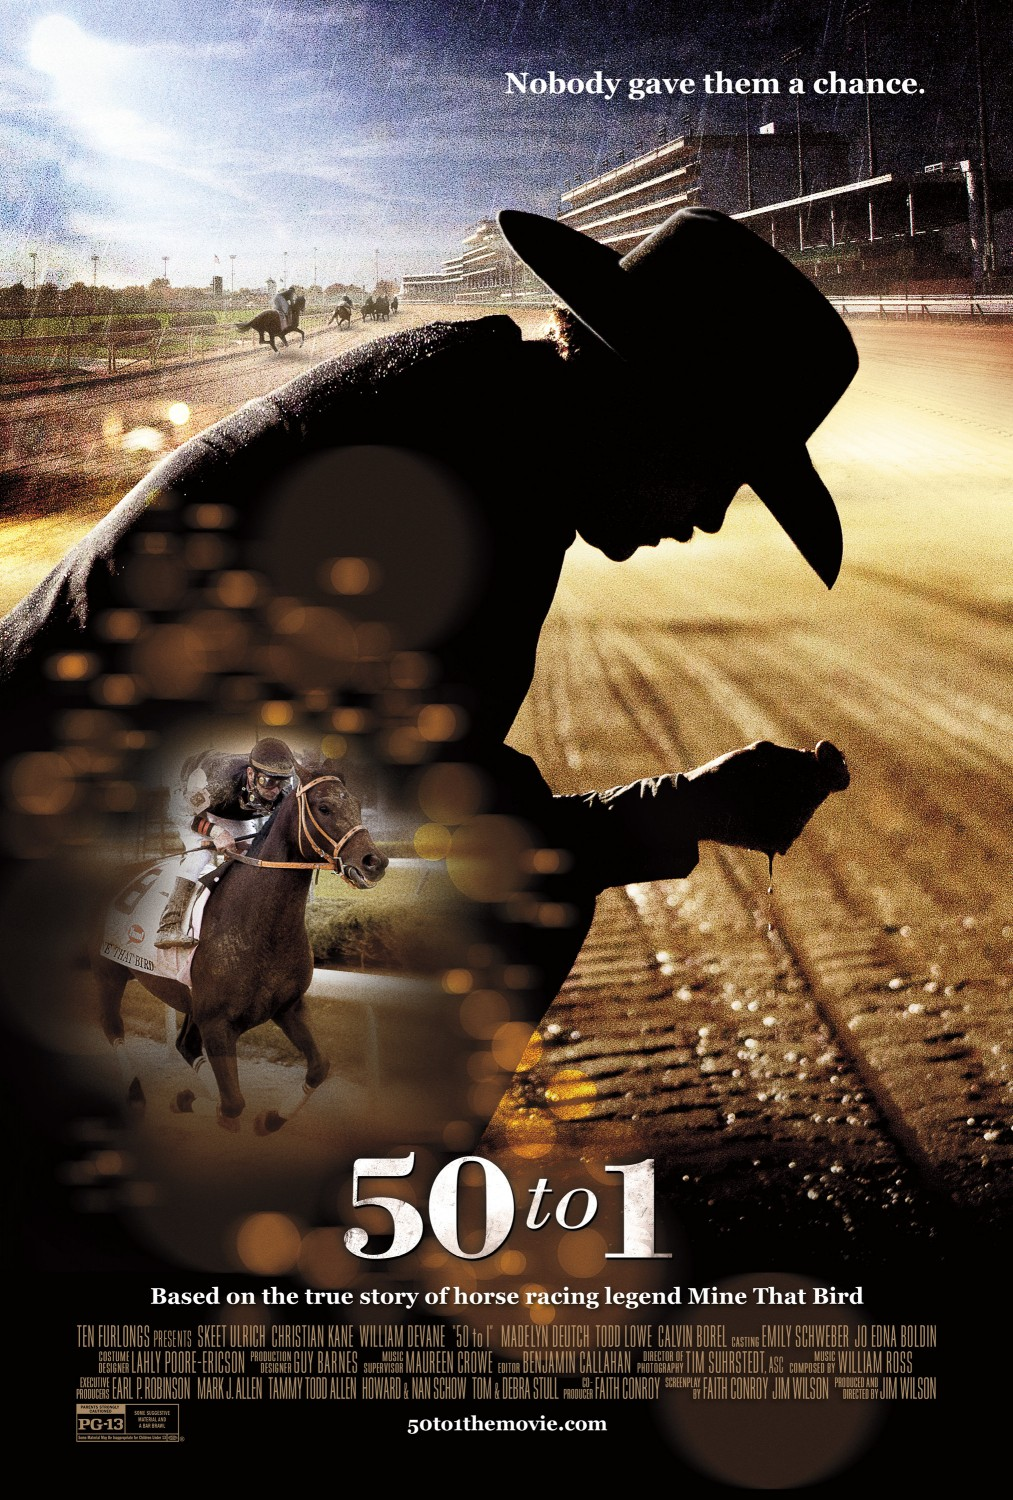 Extra Large Movie Poster Image for 50 to 1